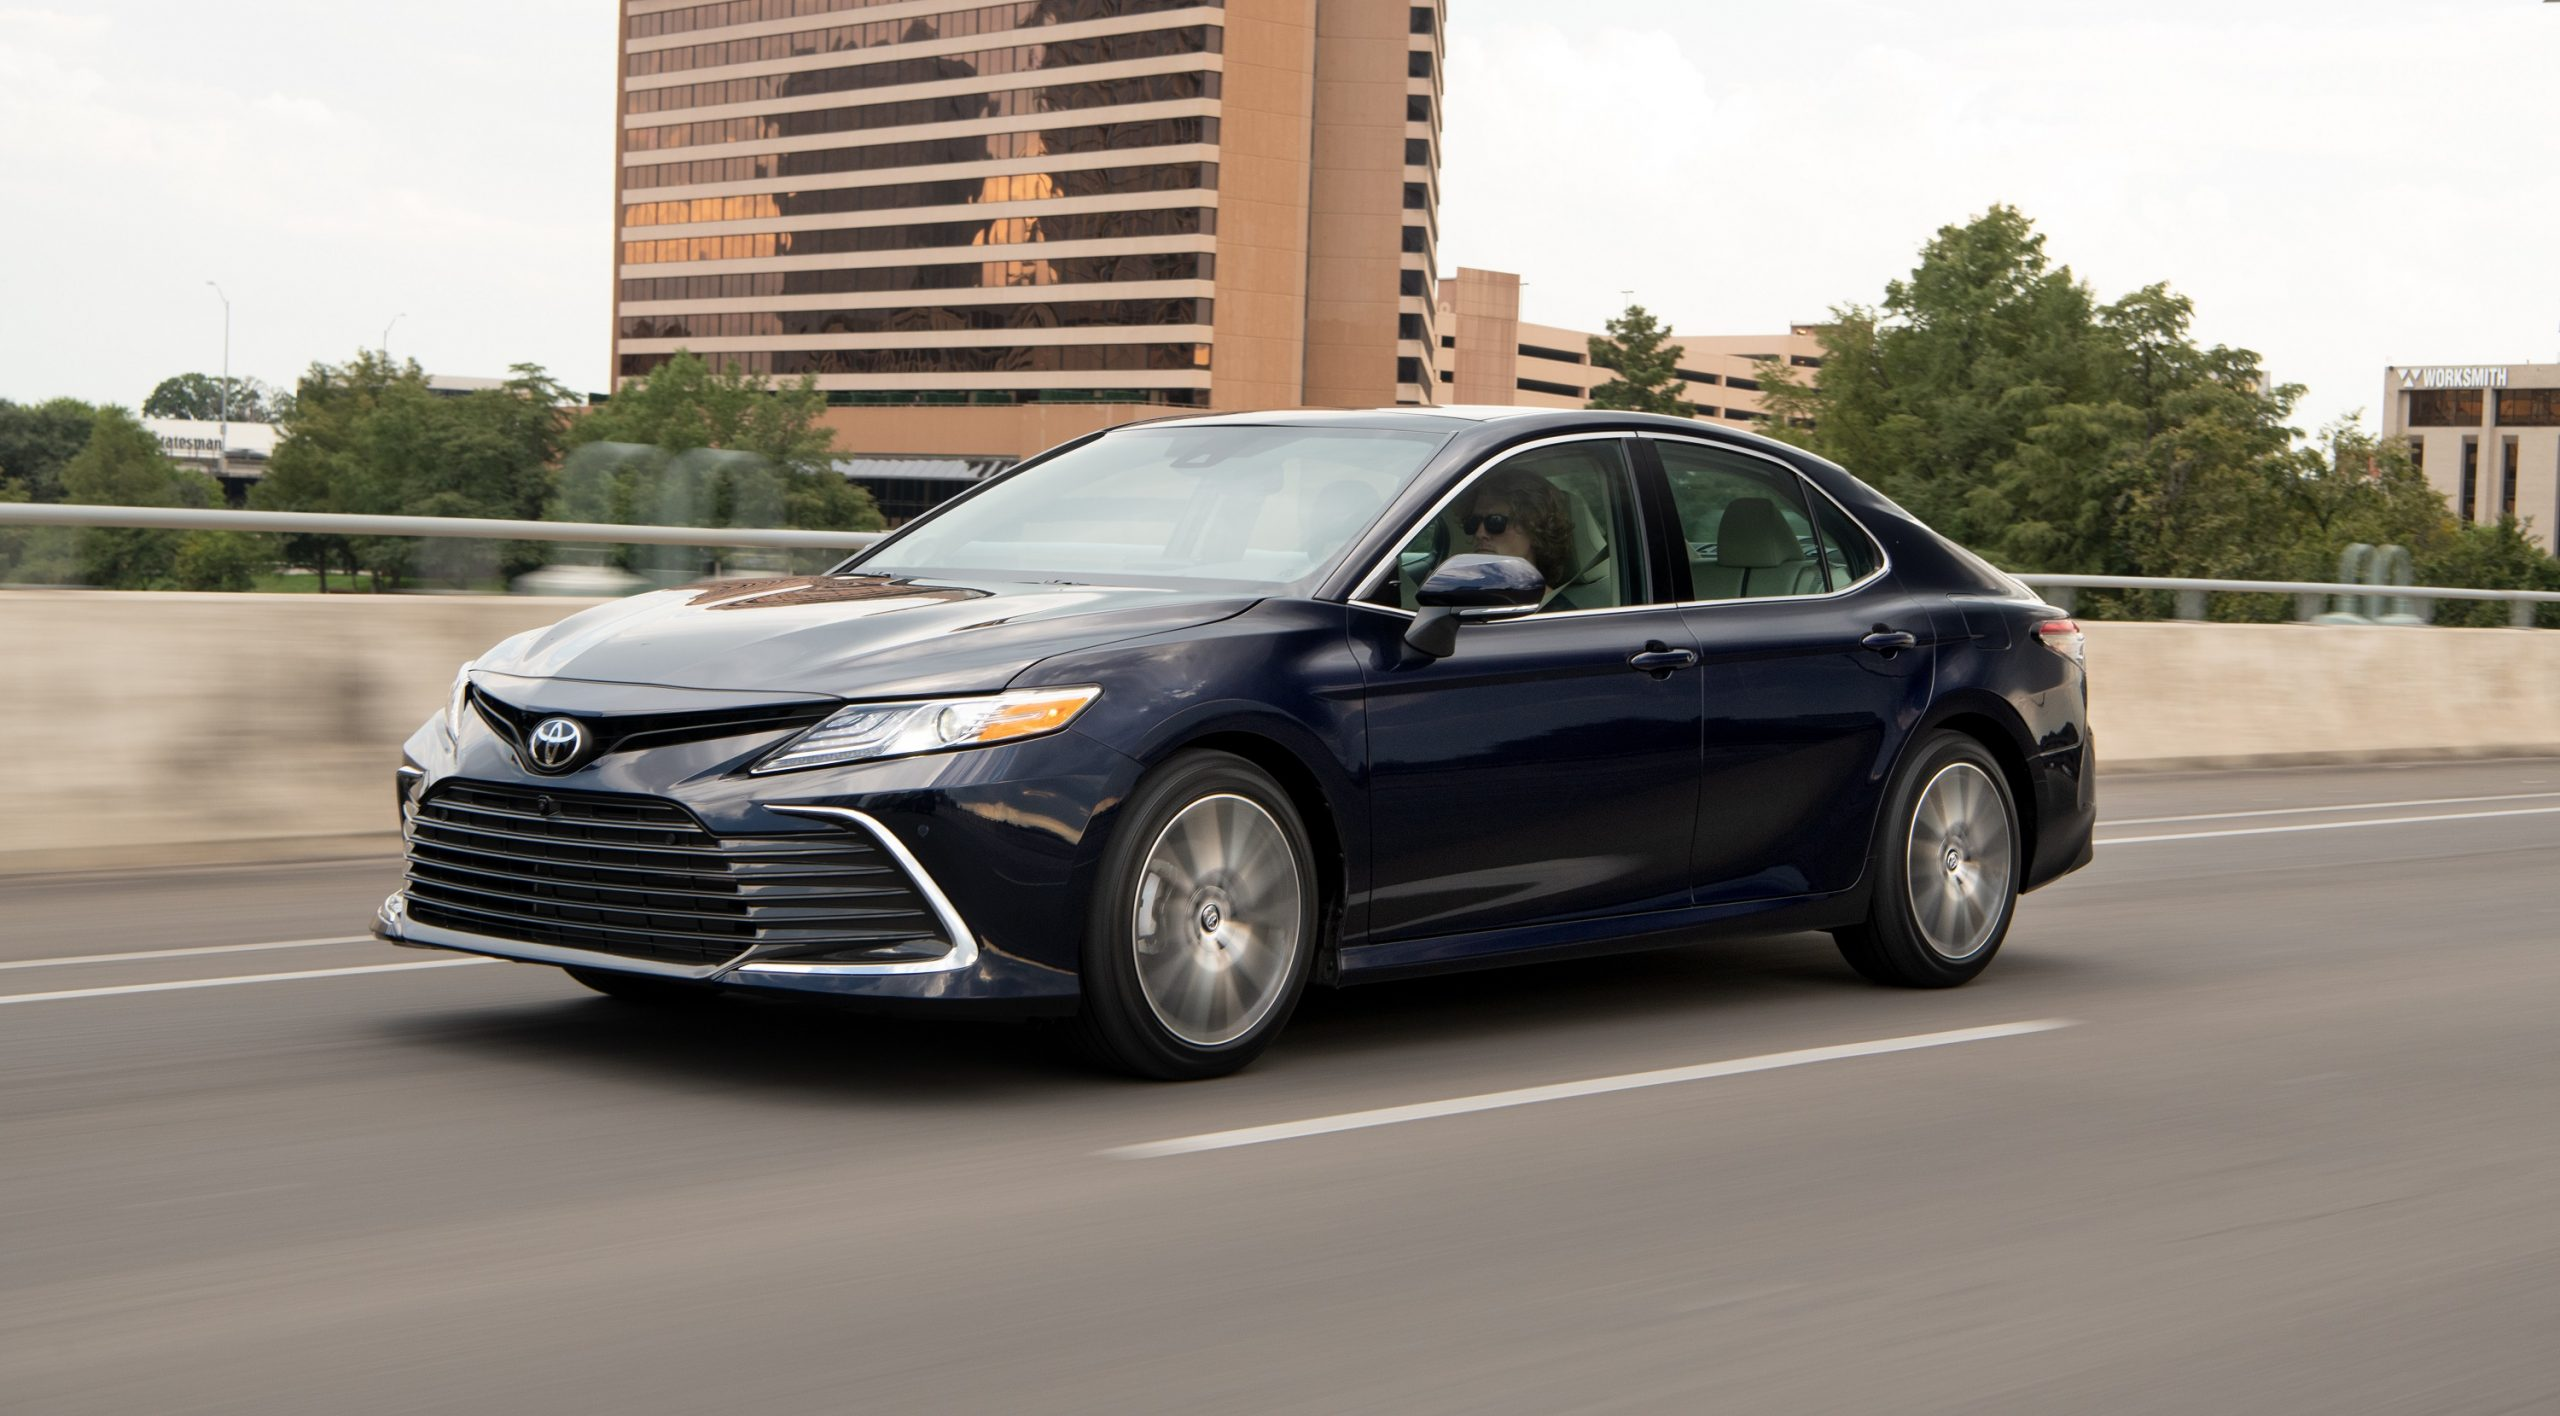 A blue 2021 Toyota Camry sedan rolls down the highway, shot from the front 3/4 angle.